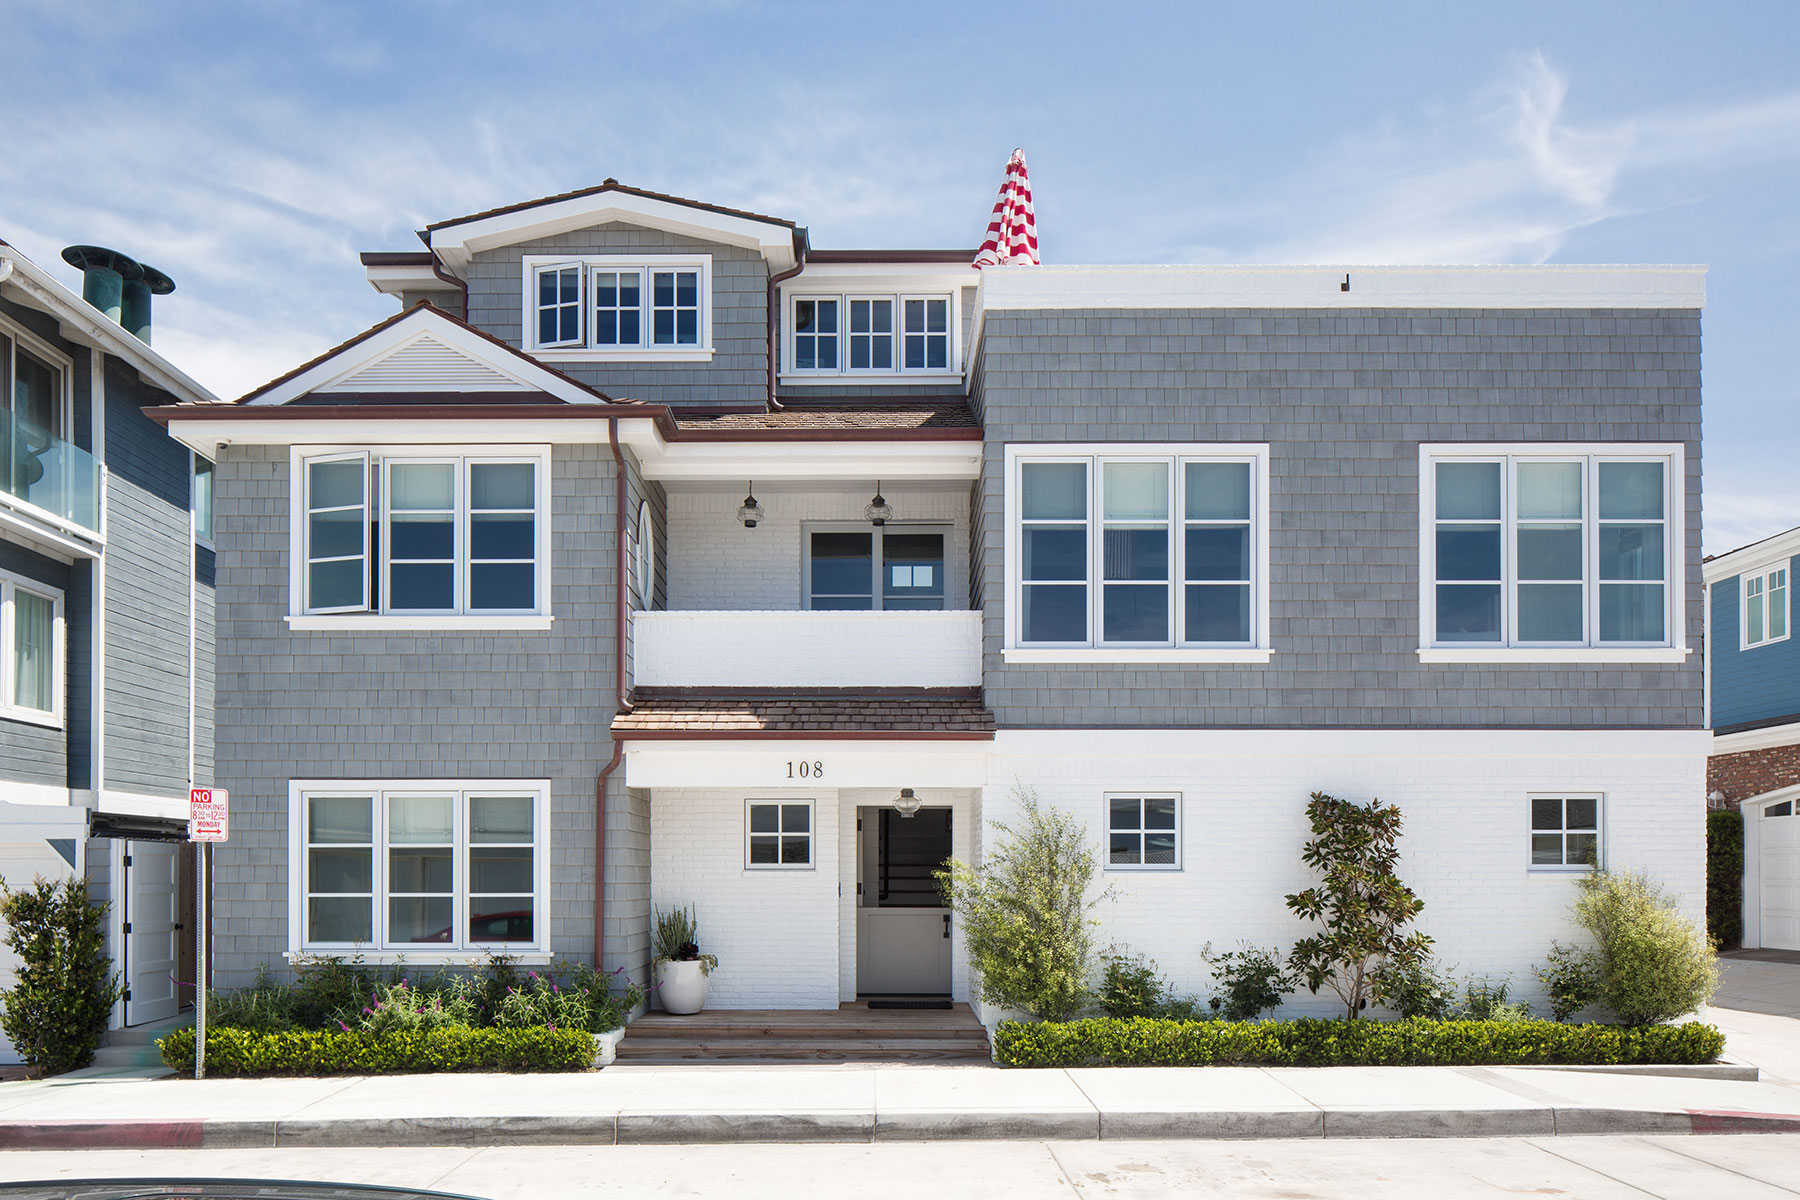 Casa Unifamiliar por un Venta en 108 11th Street Newport Beach, California, 92661 Estados Unidos